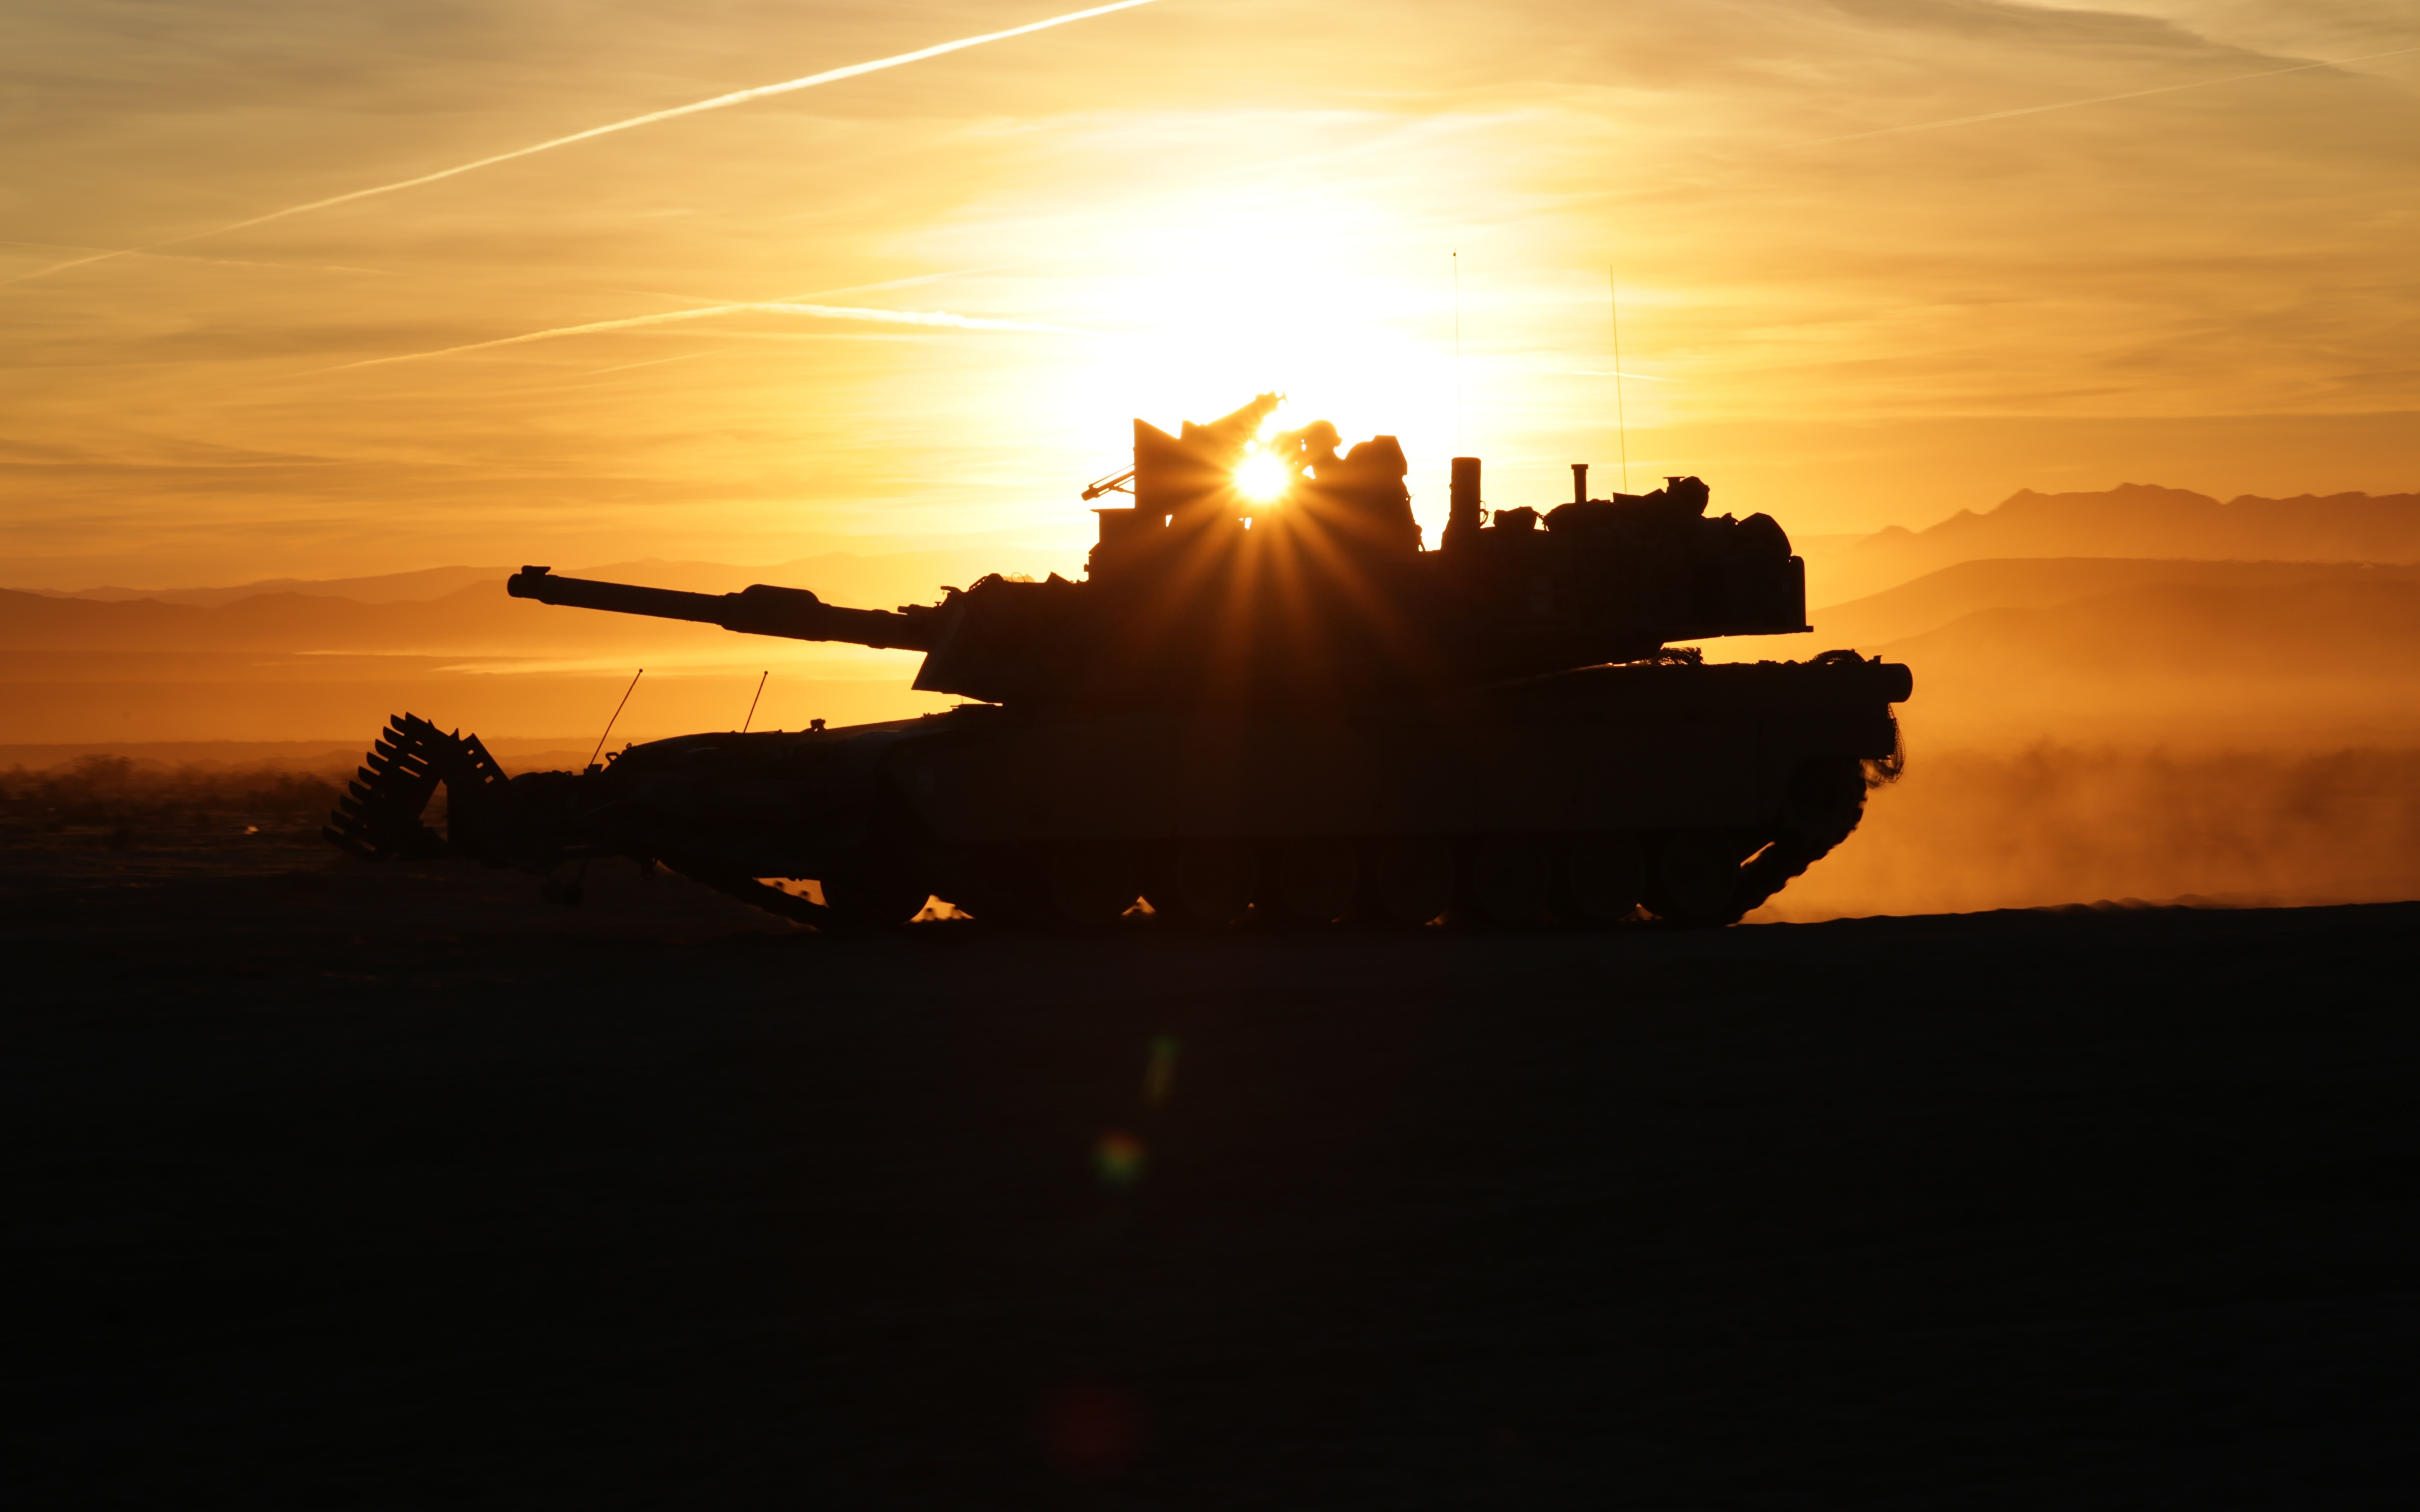 Tanks_M1_Abrams_M1A2_Silhouette_Rays_of_light_549386_3840x2400.jpg